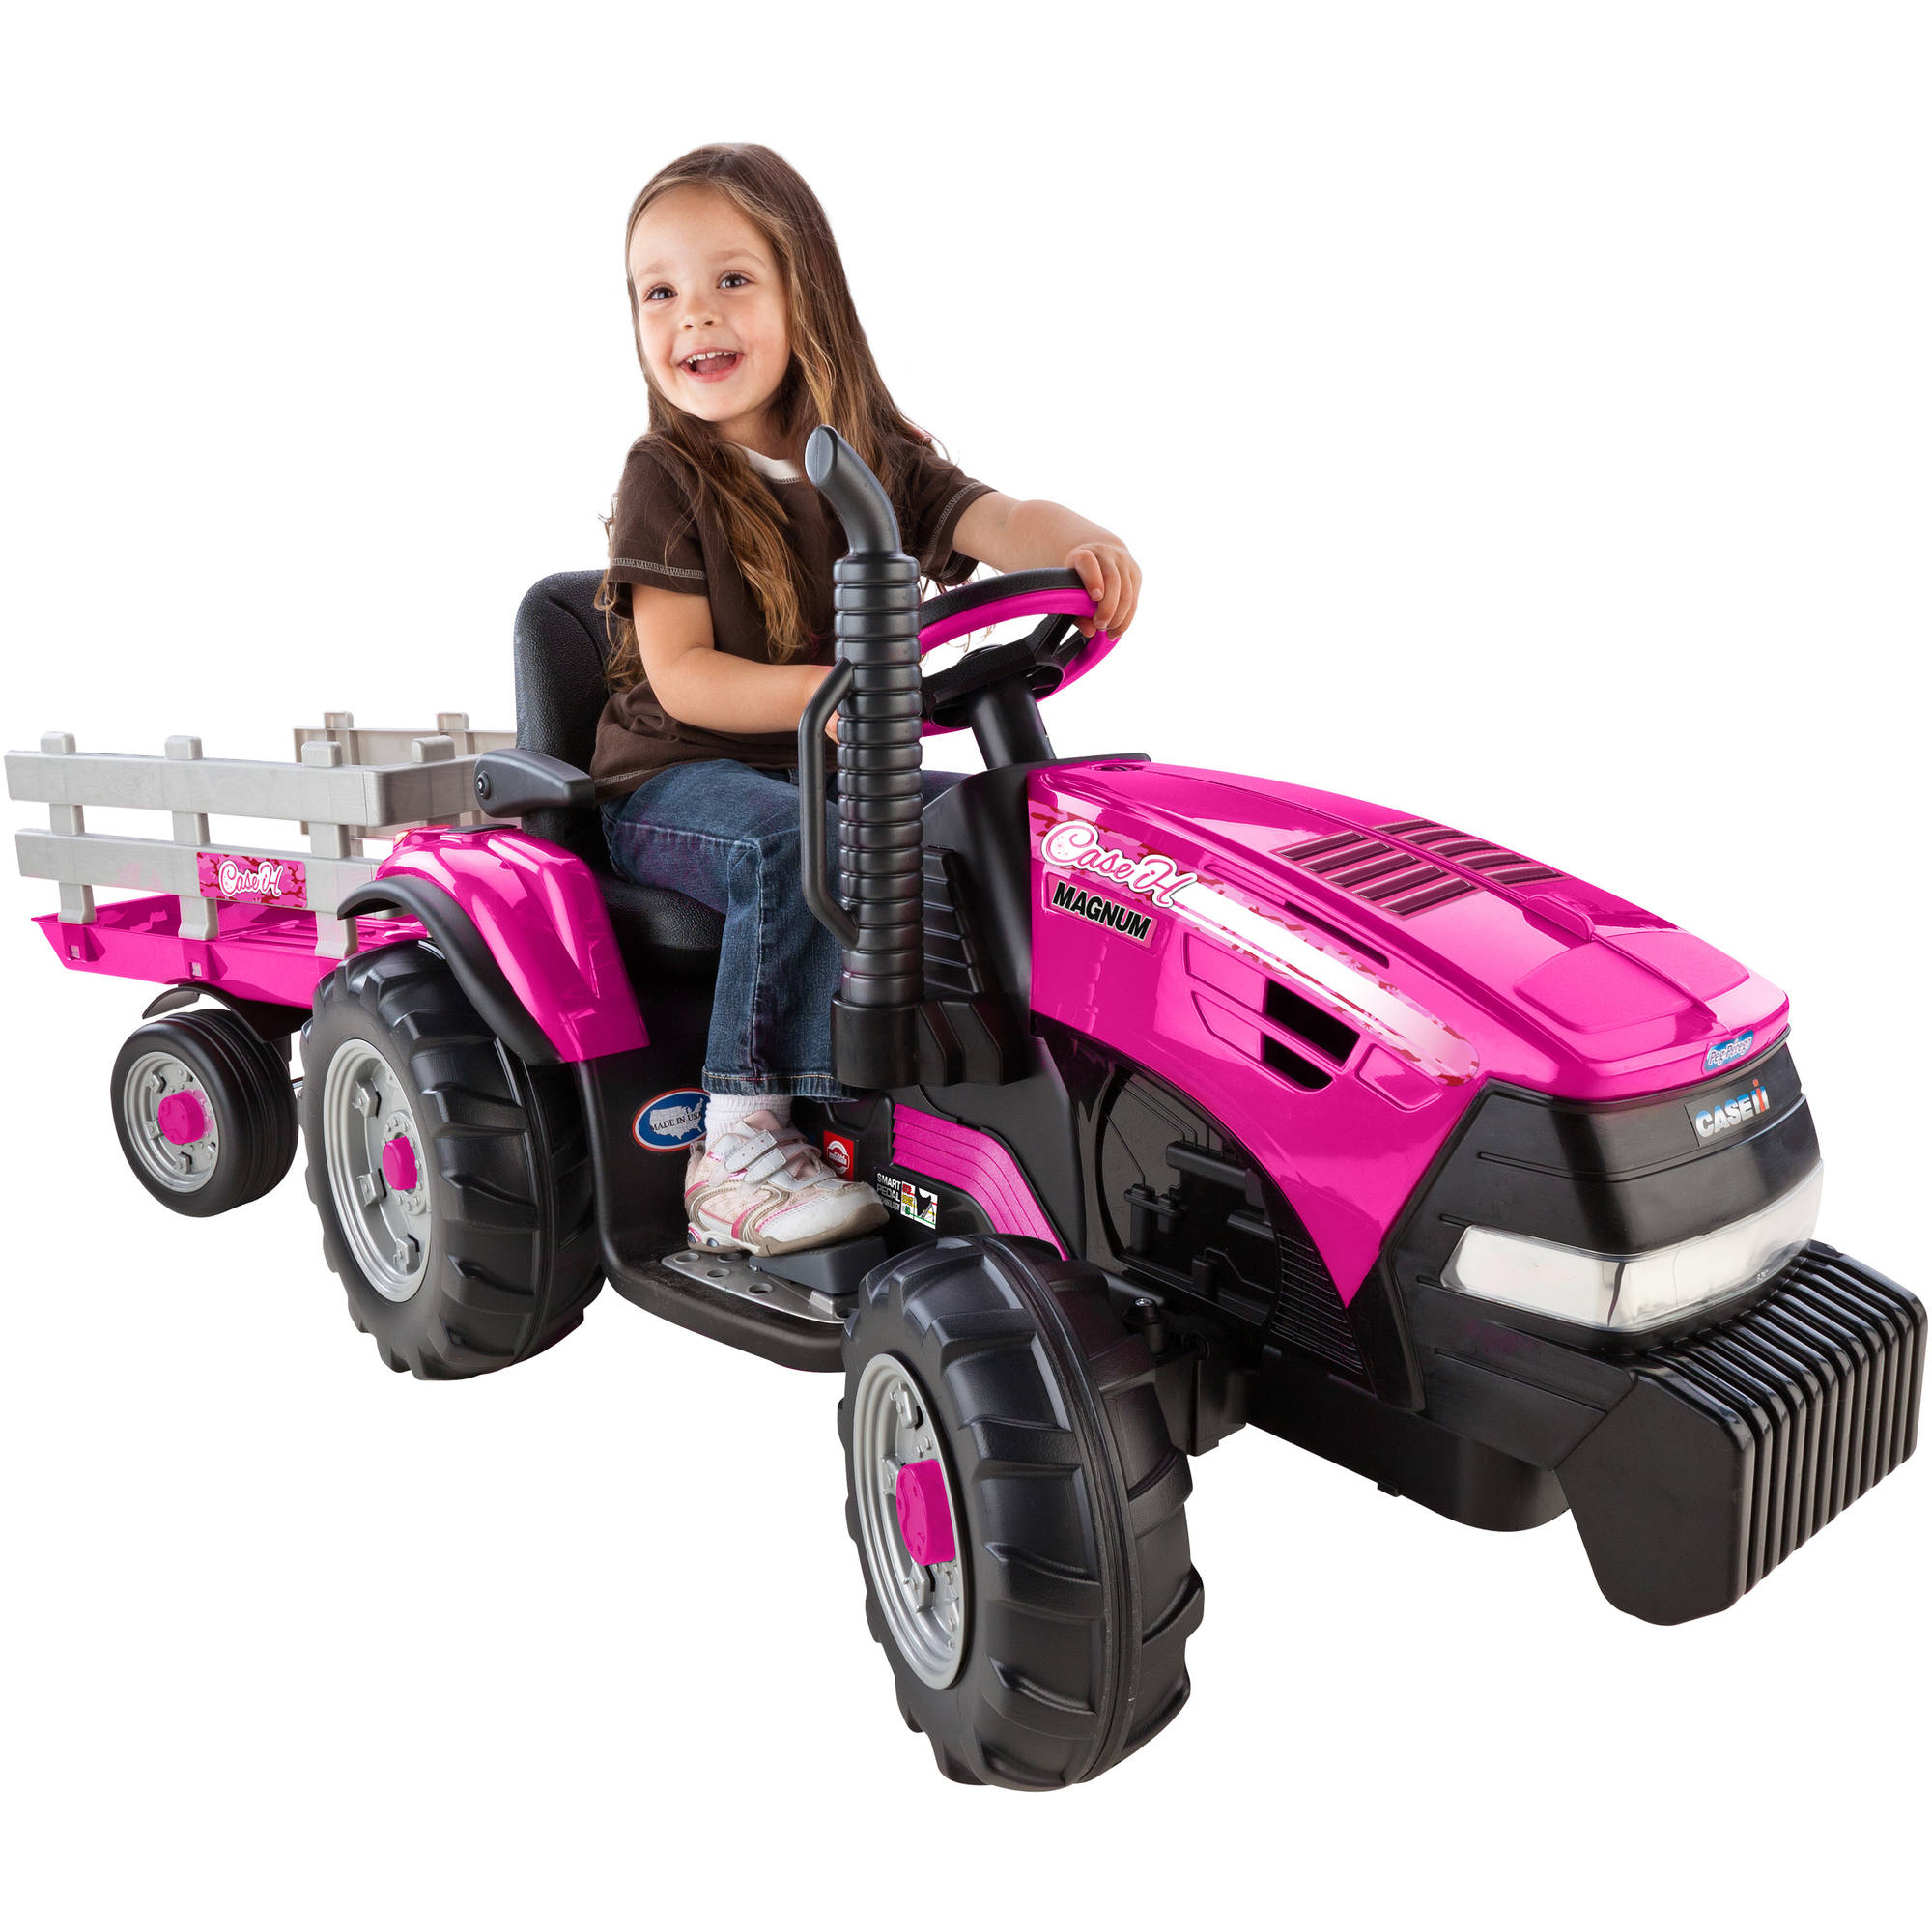 Peg Perego Ride On Toys >> Peg Perego Case Ih Tractor And Trailer Pedal Ride On Walmart Com